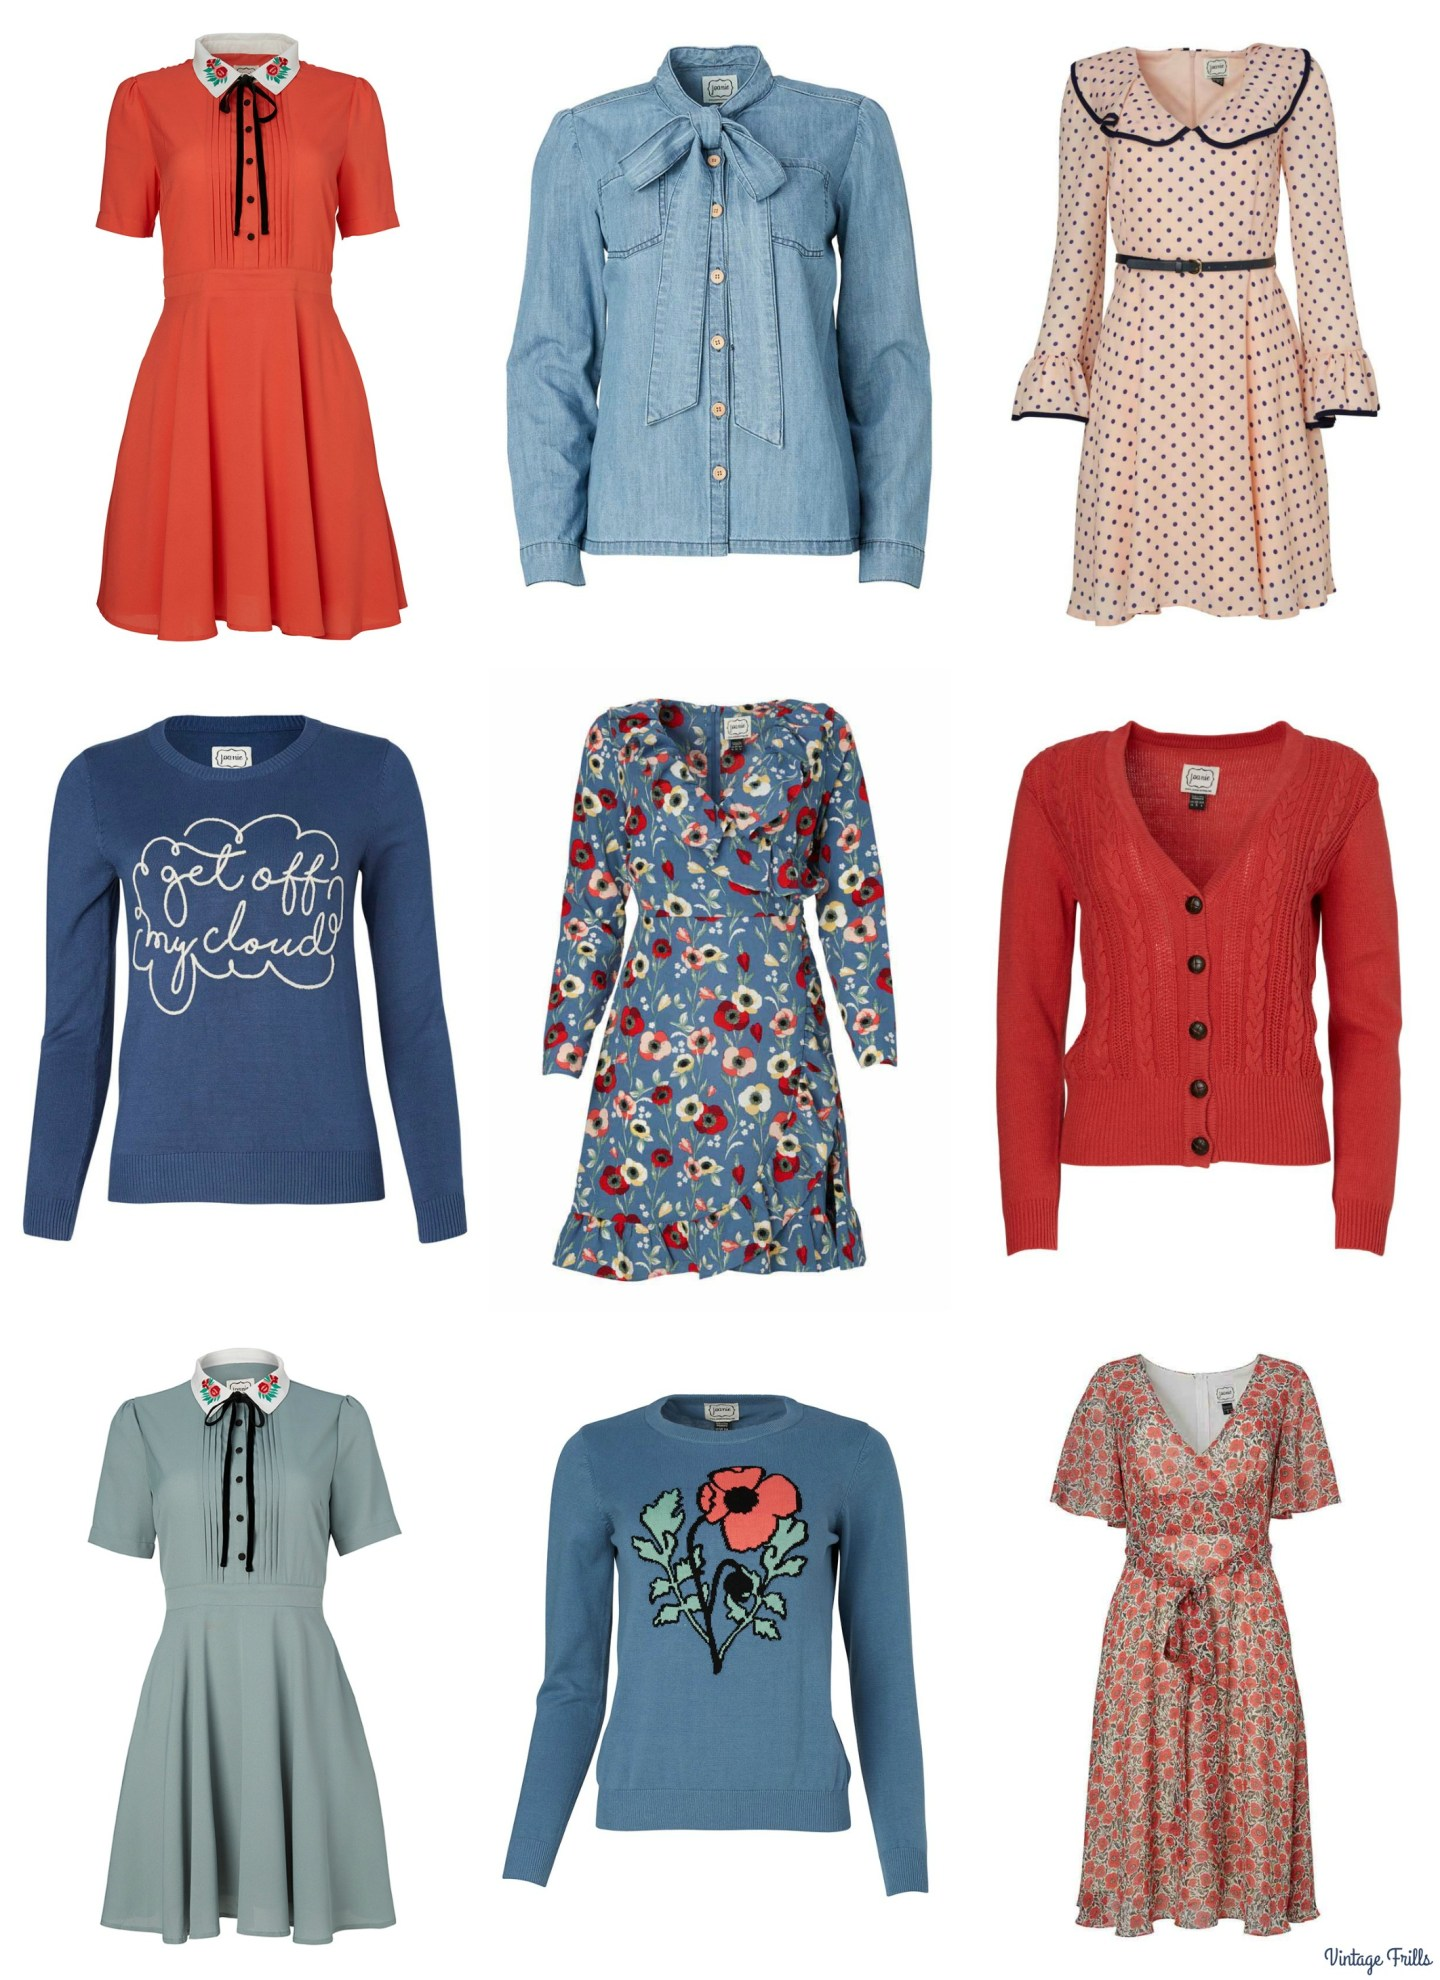 Joanie Clothing Autumn Wishlist